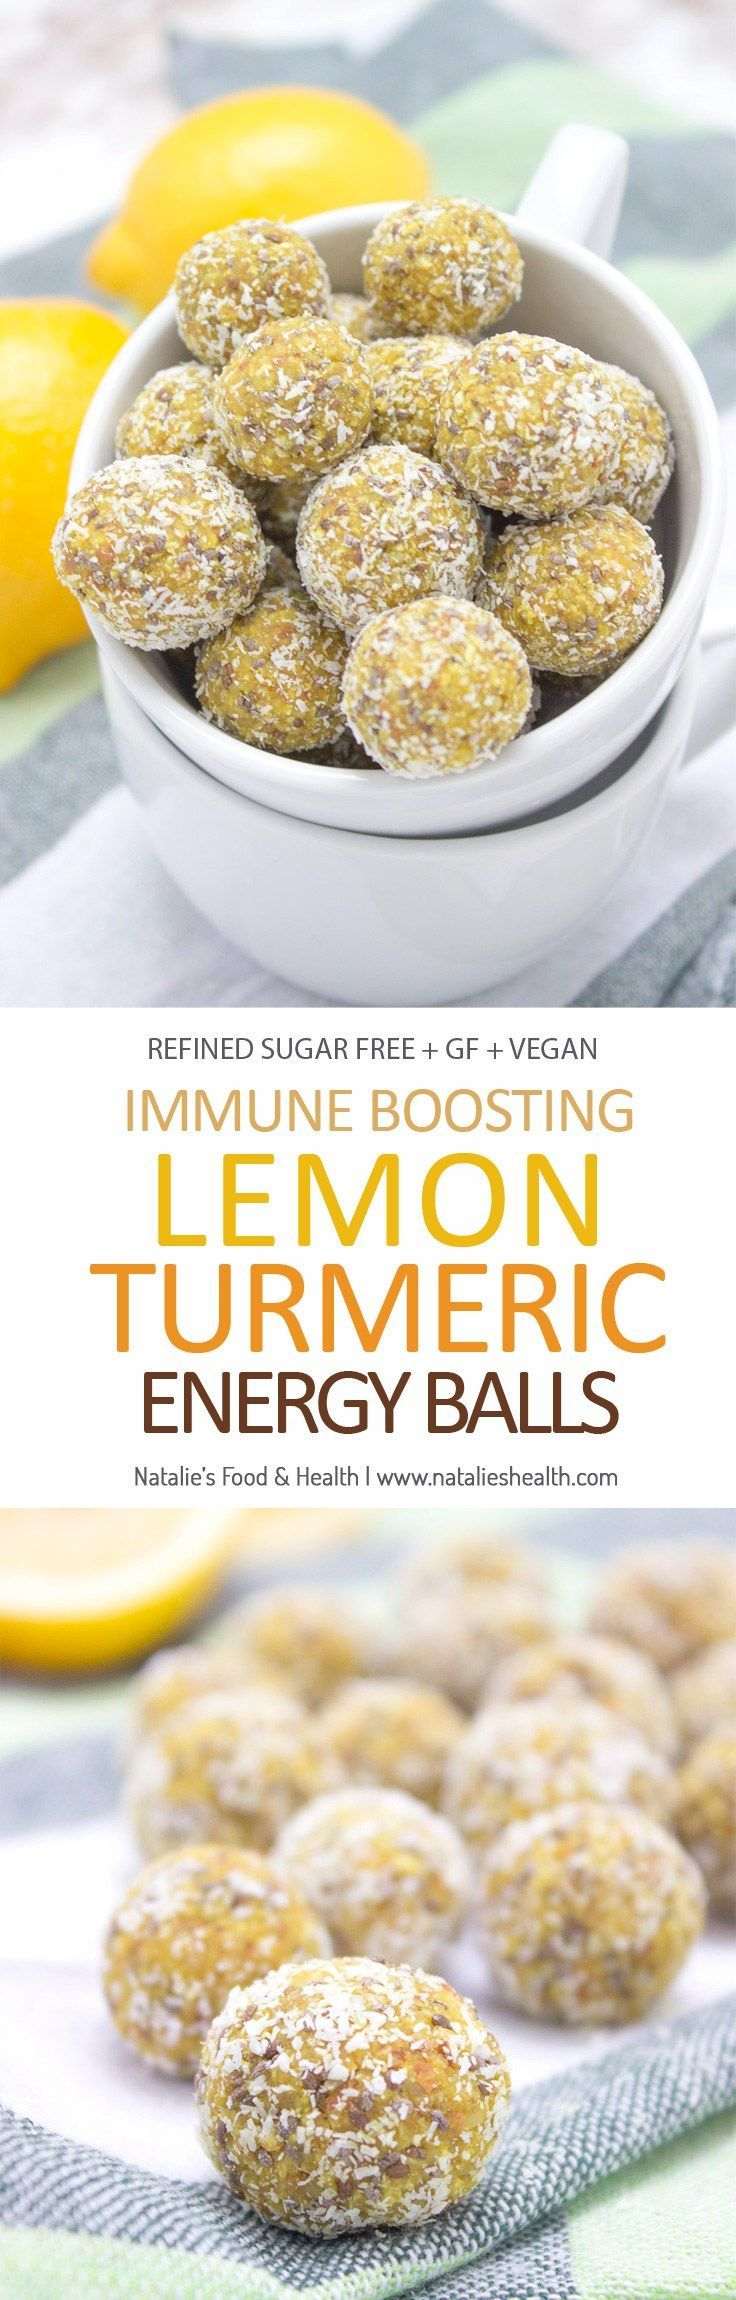 Lemon Turmeric Energy Balls (24) rich in beautiful citrus aroma enriched with turmeric, and chia seeds. These immune boosting, refined sugar-free energy balls are rich in fibers and plant-based proteins. Perfect for everyday snacking. CLICK to read the recipe or PIN for later!